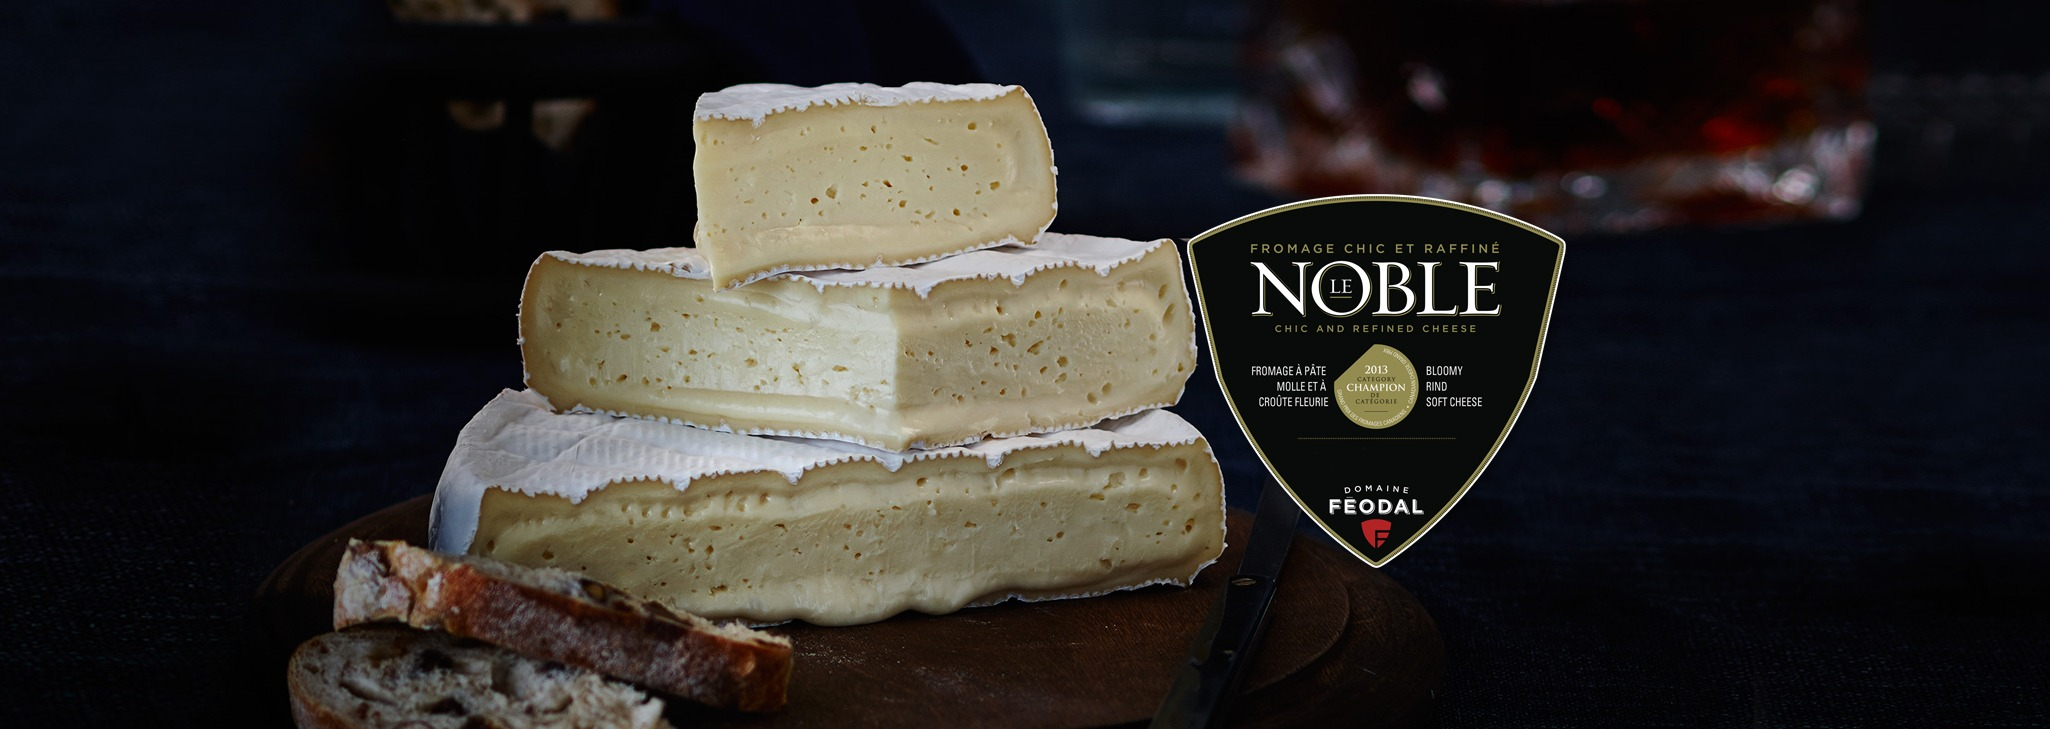 noble-fromage